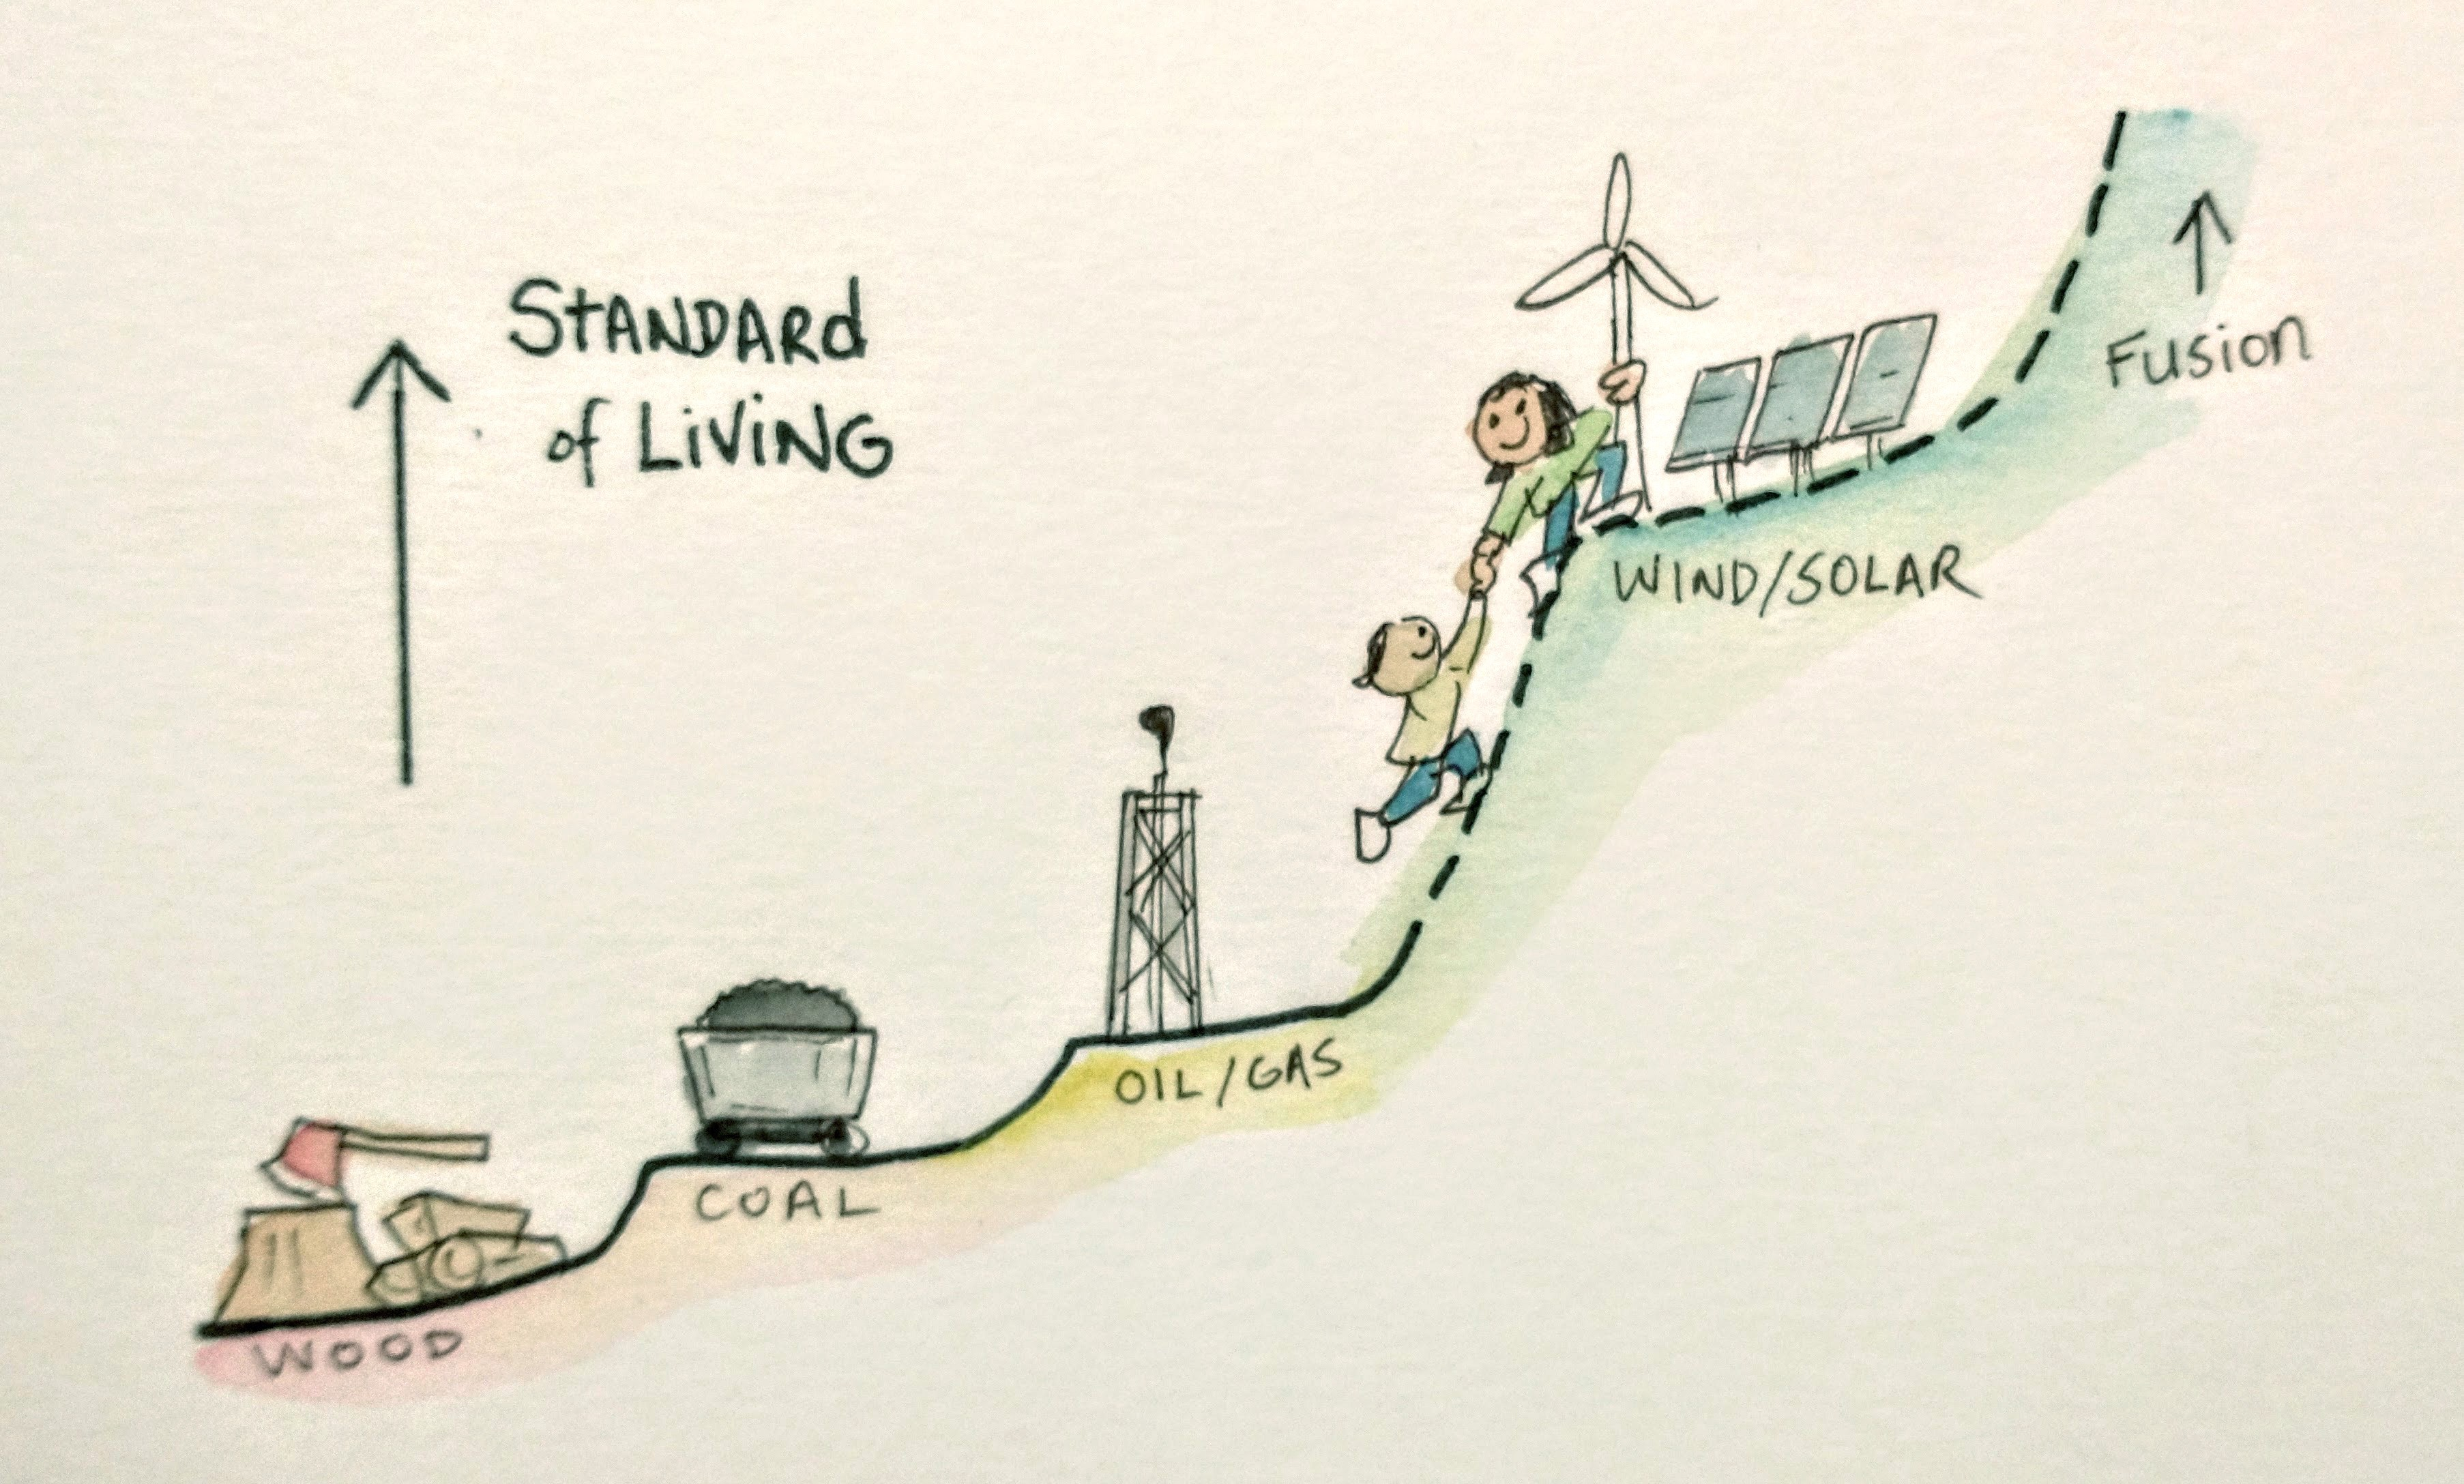 2 people climbing a stepped hill, from wood to coal to oil/gas to wind /solar, with fusion beyond. An up arrow is labeled Standard of Living